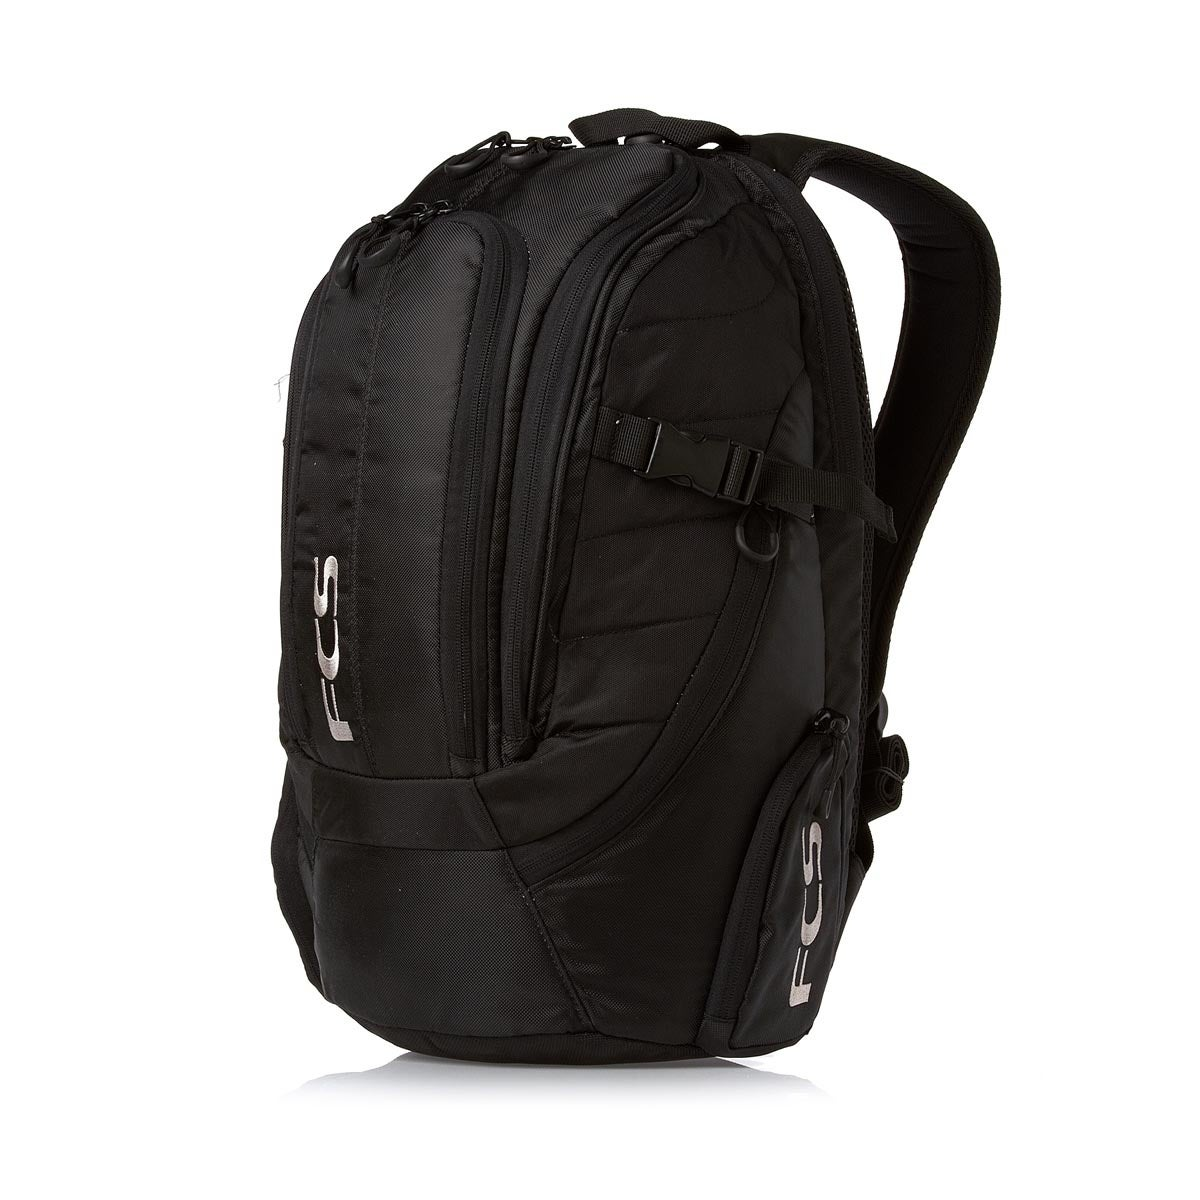 FCS Stash Premium Laptop Backpack - Black